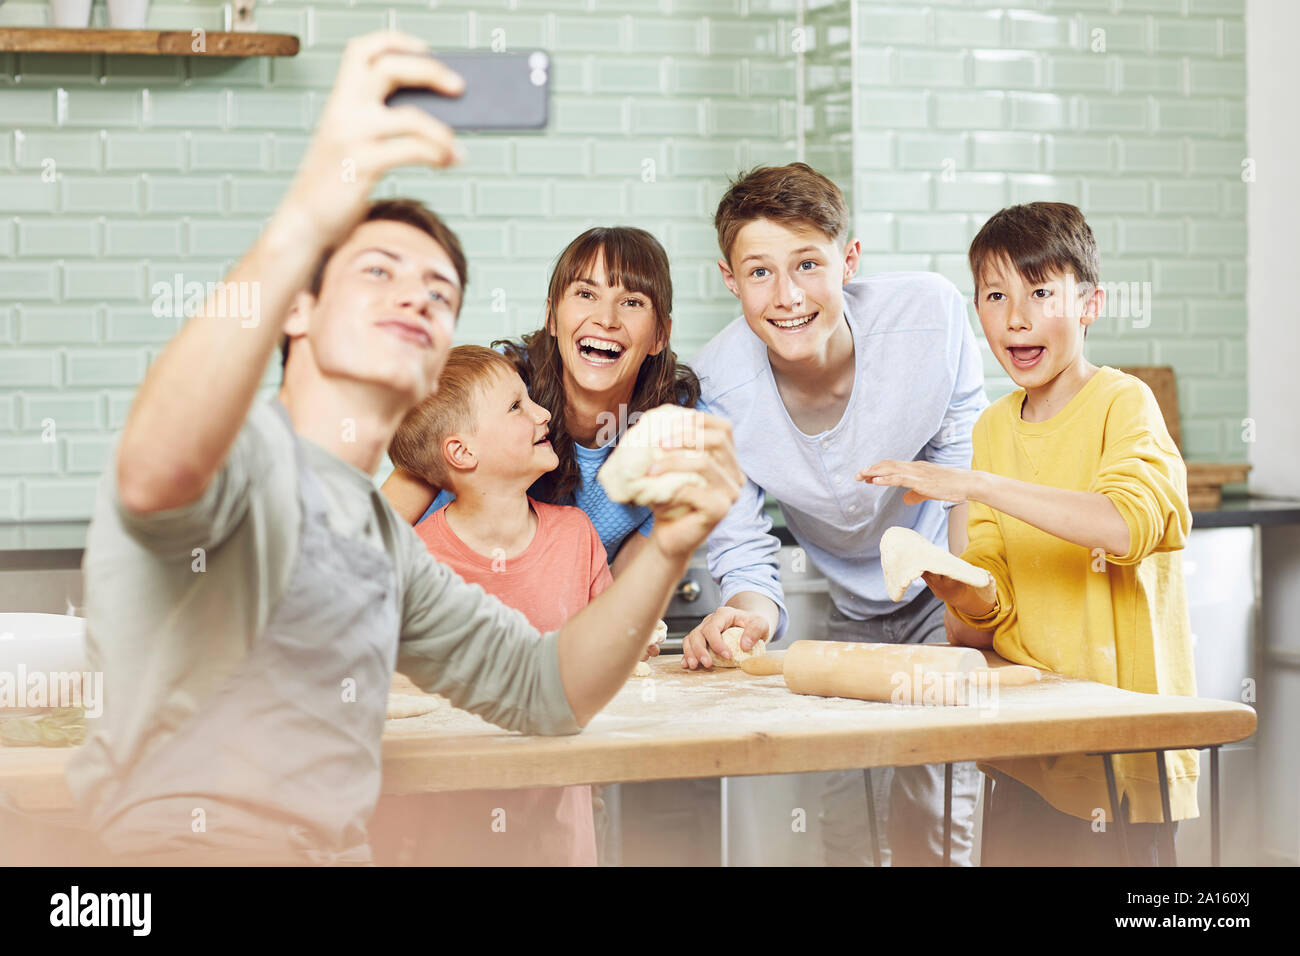 Sone taking pictures of his mother and brothers, preparing pizza at home Stock Photo